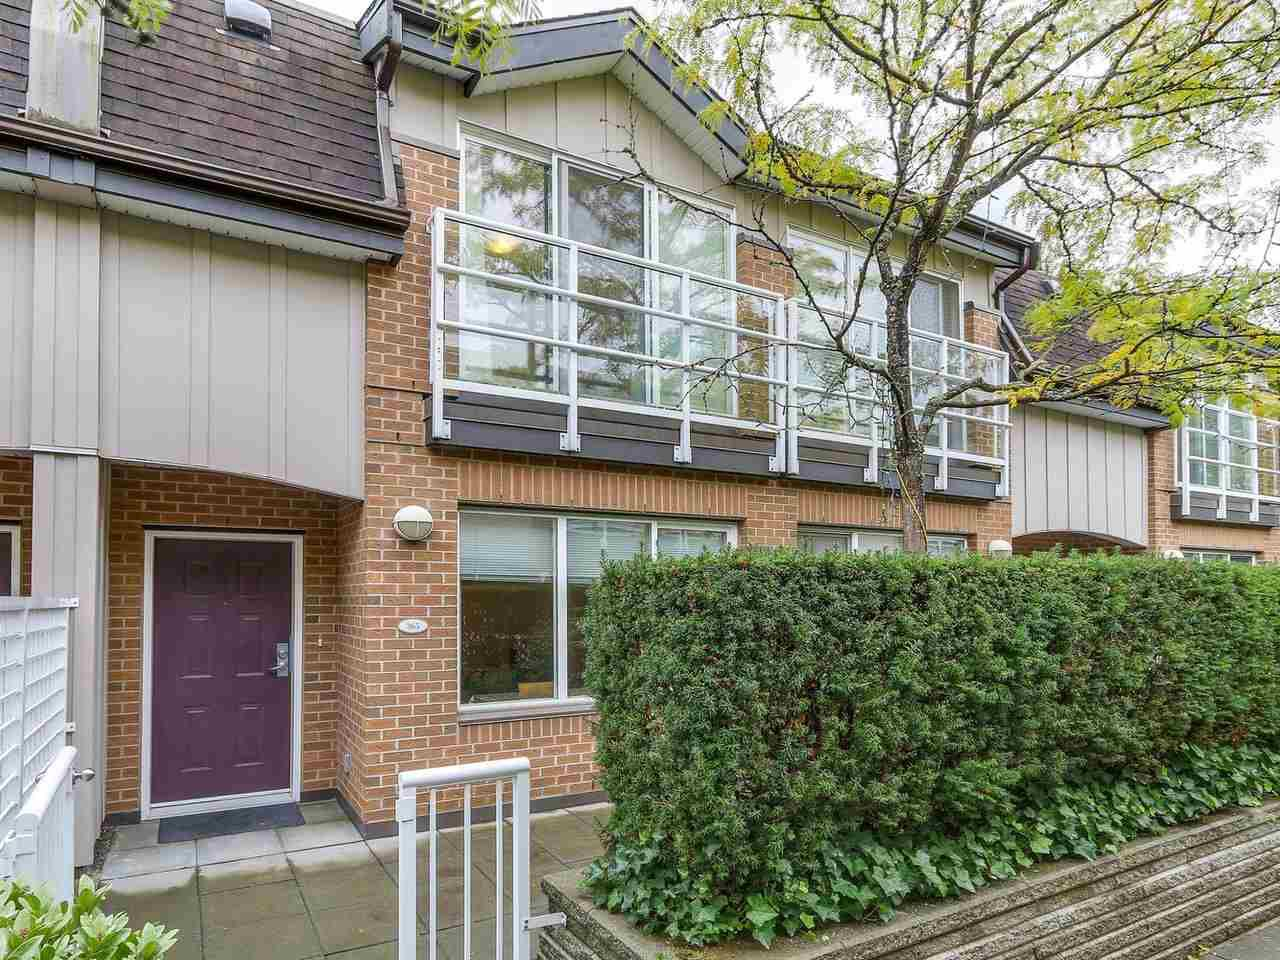 """Main Photo: 365 5790 EAST Boulevard in Vancouver: Kerrisdale Townhouse for sale in """"THE LAUREATES"""" (Vancouver West)  : MLS®# R2209302"""